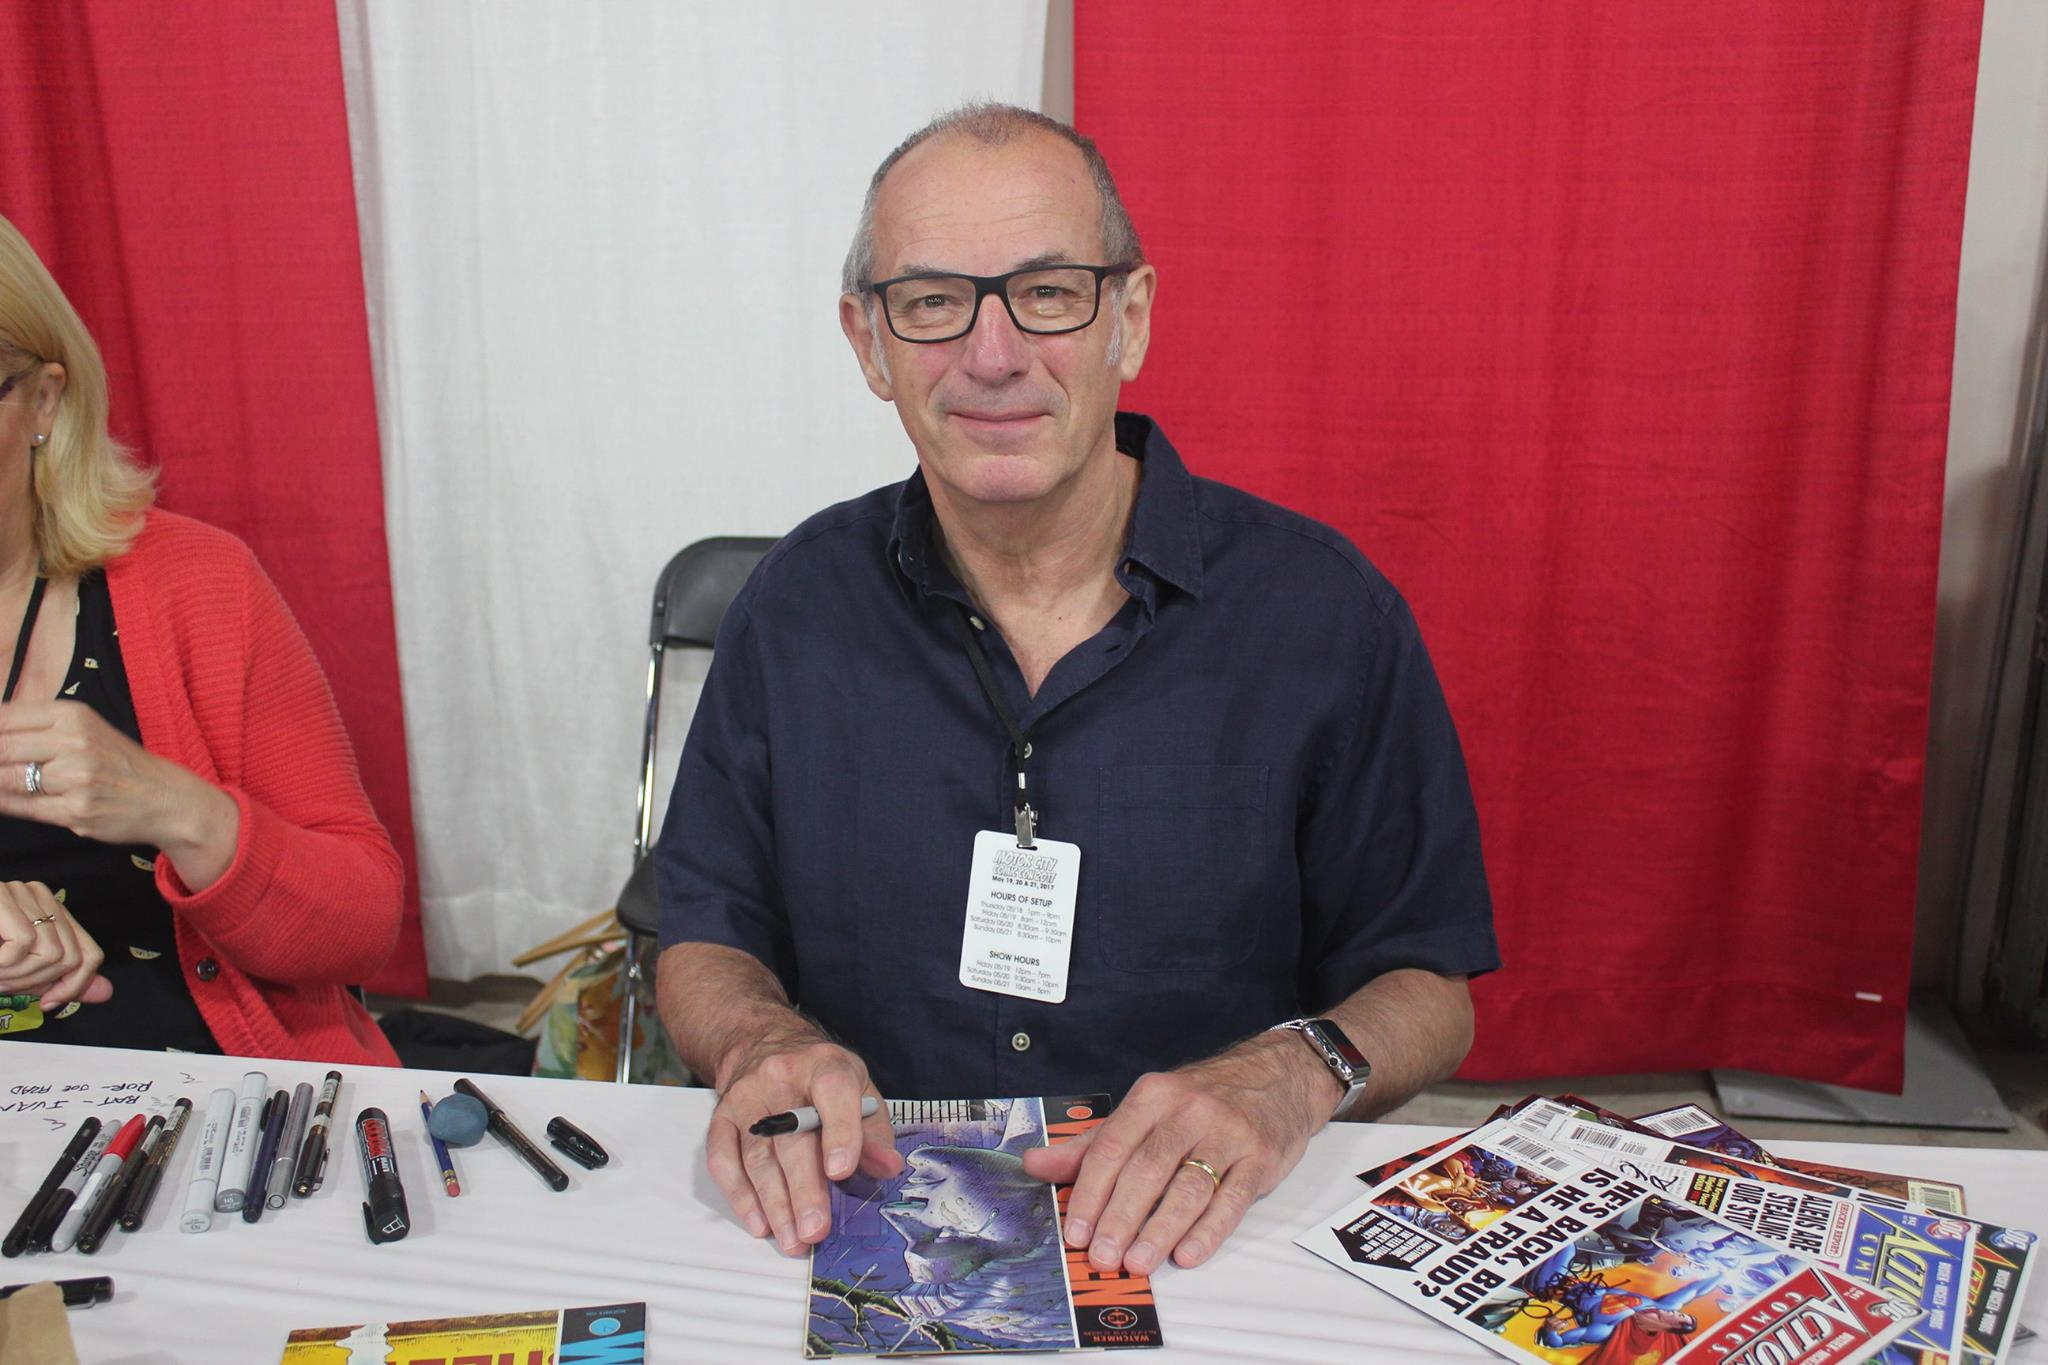 Comic Legend Dave Gibbons! Co-creator of Watchmen.